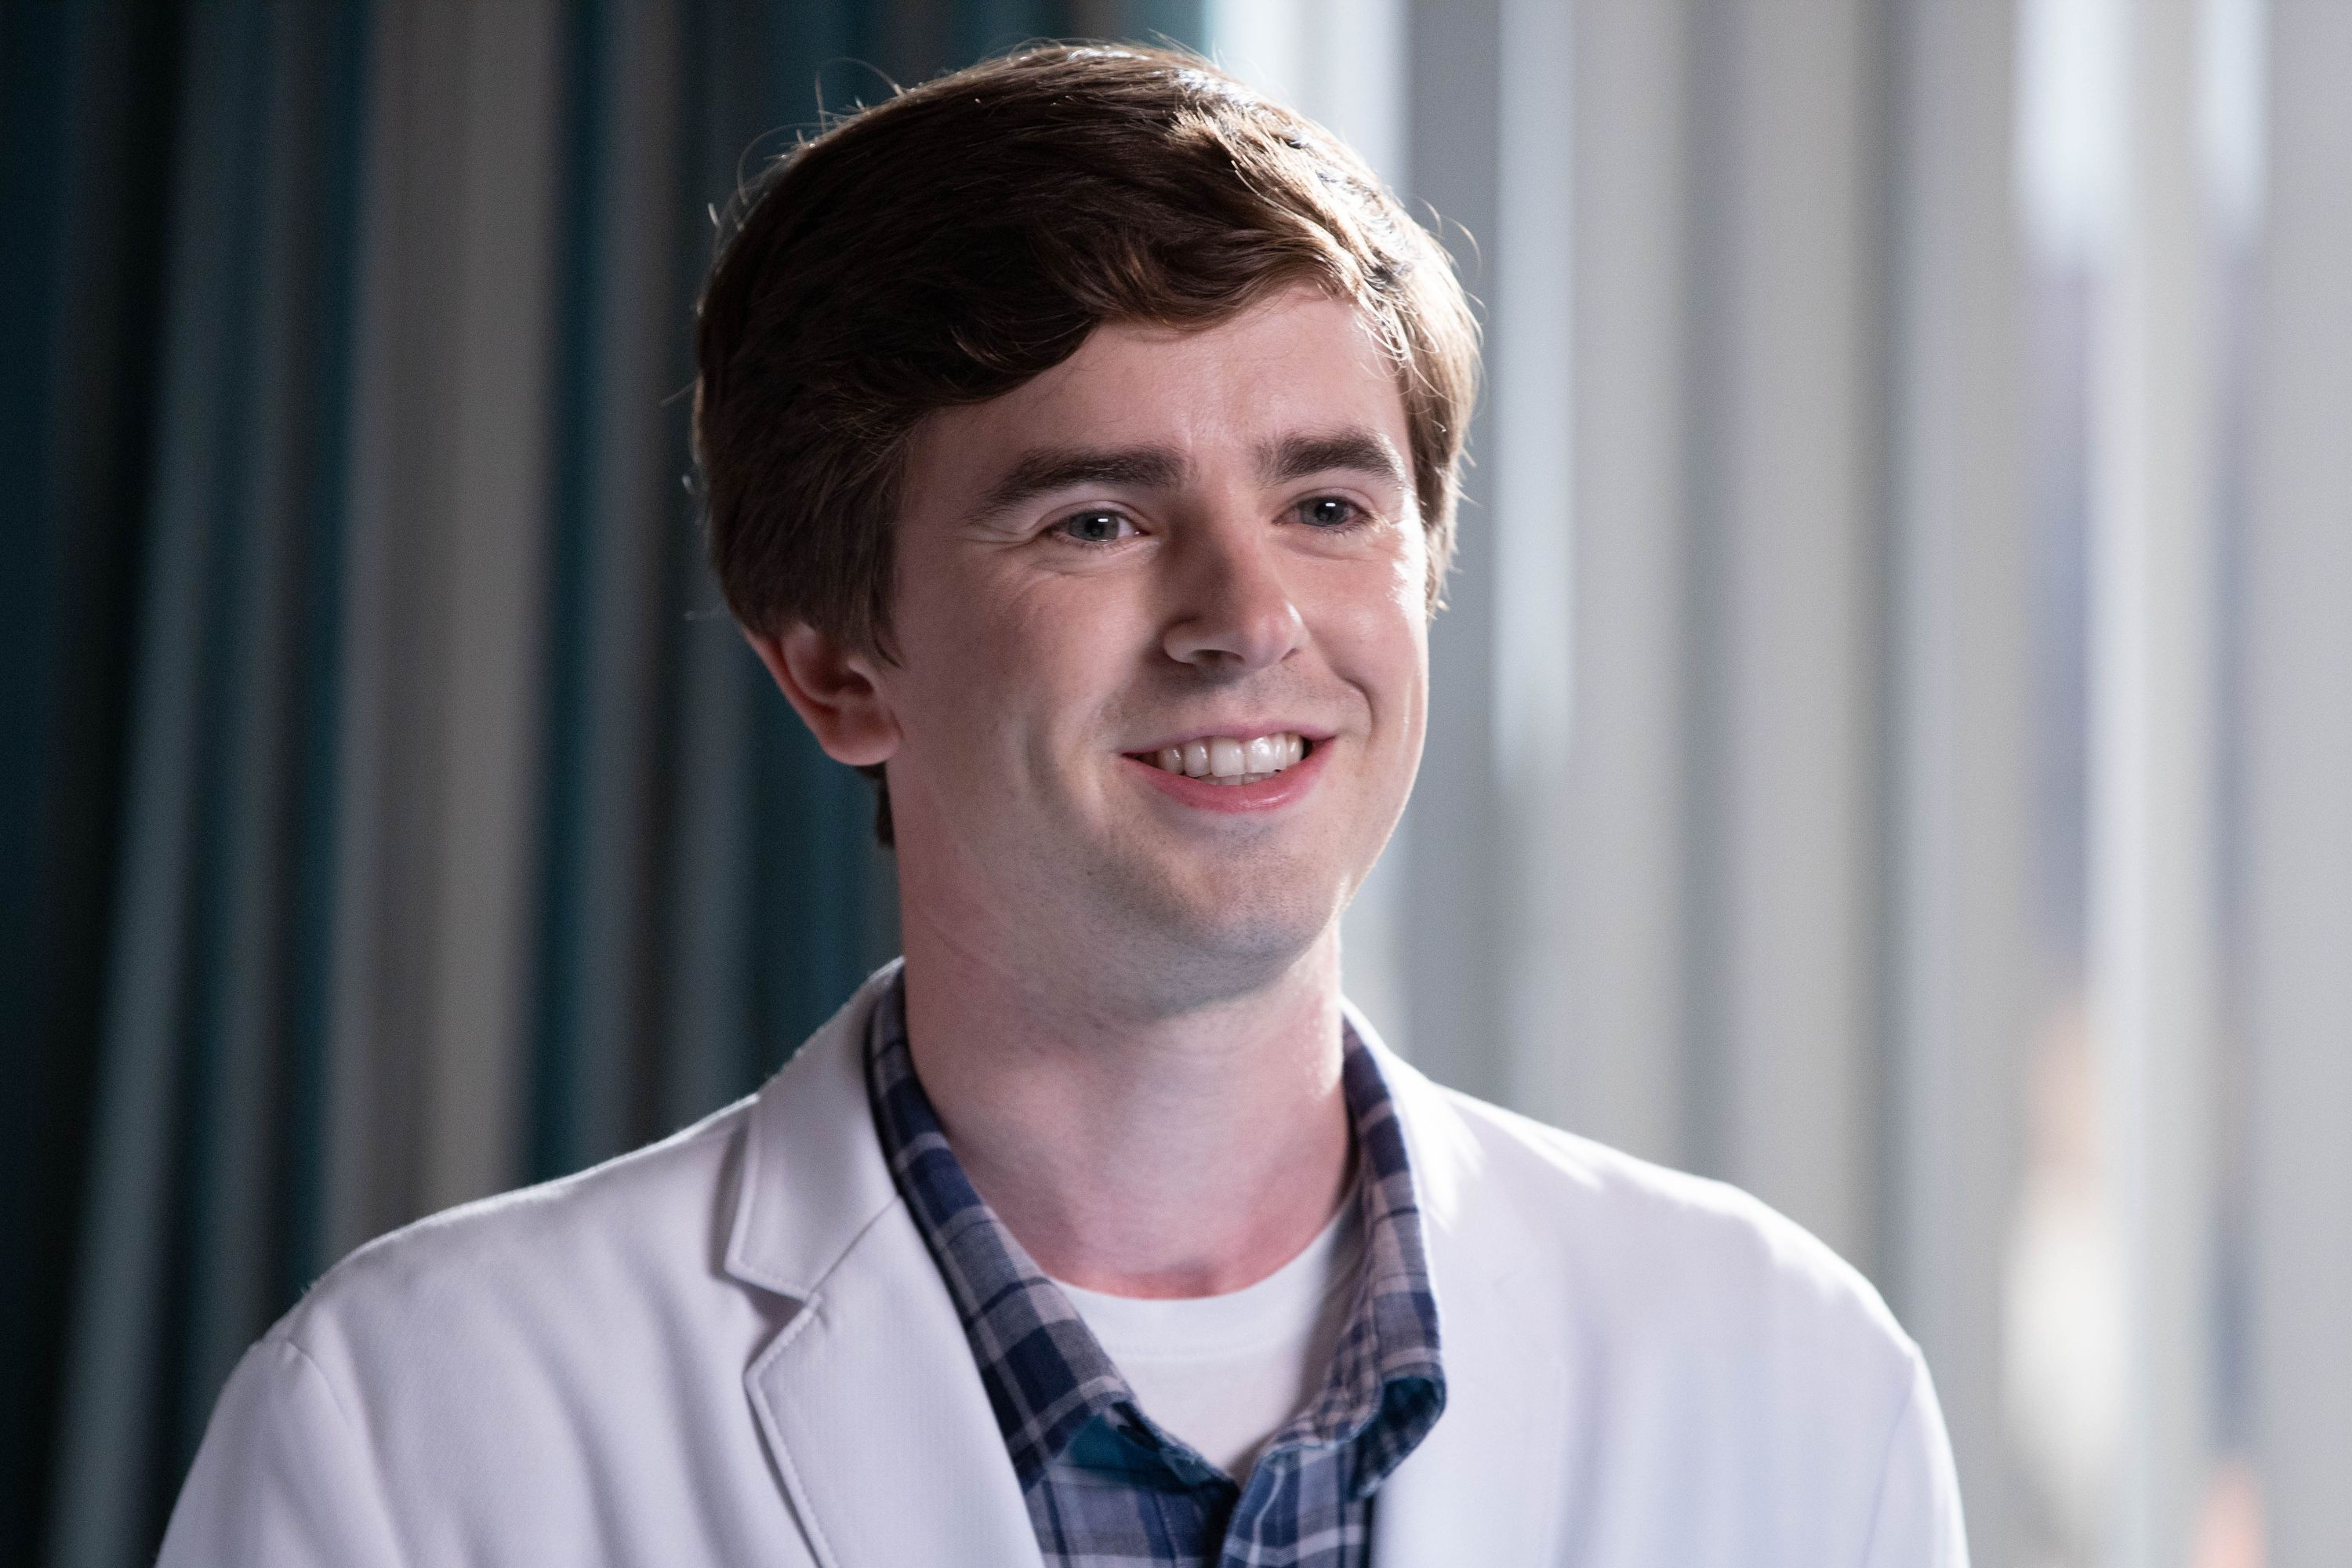 """'The Good Doctor' Star Freddie Highmore Says He Feels """"Very Fortunate"""" to Play Someone With Autism on TV"""